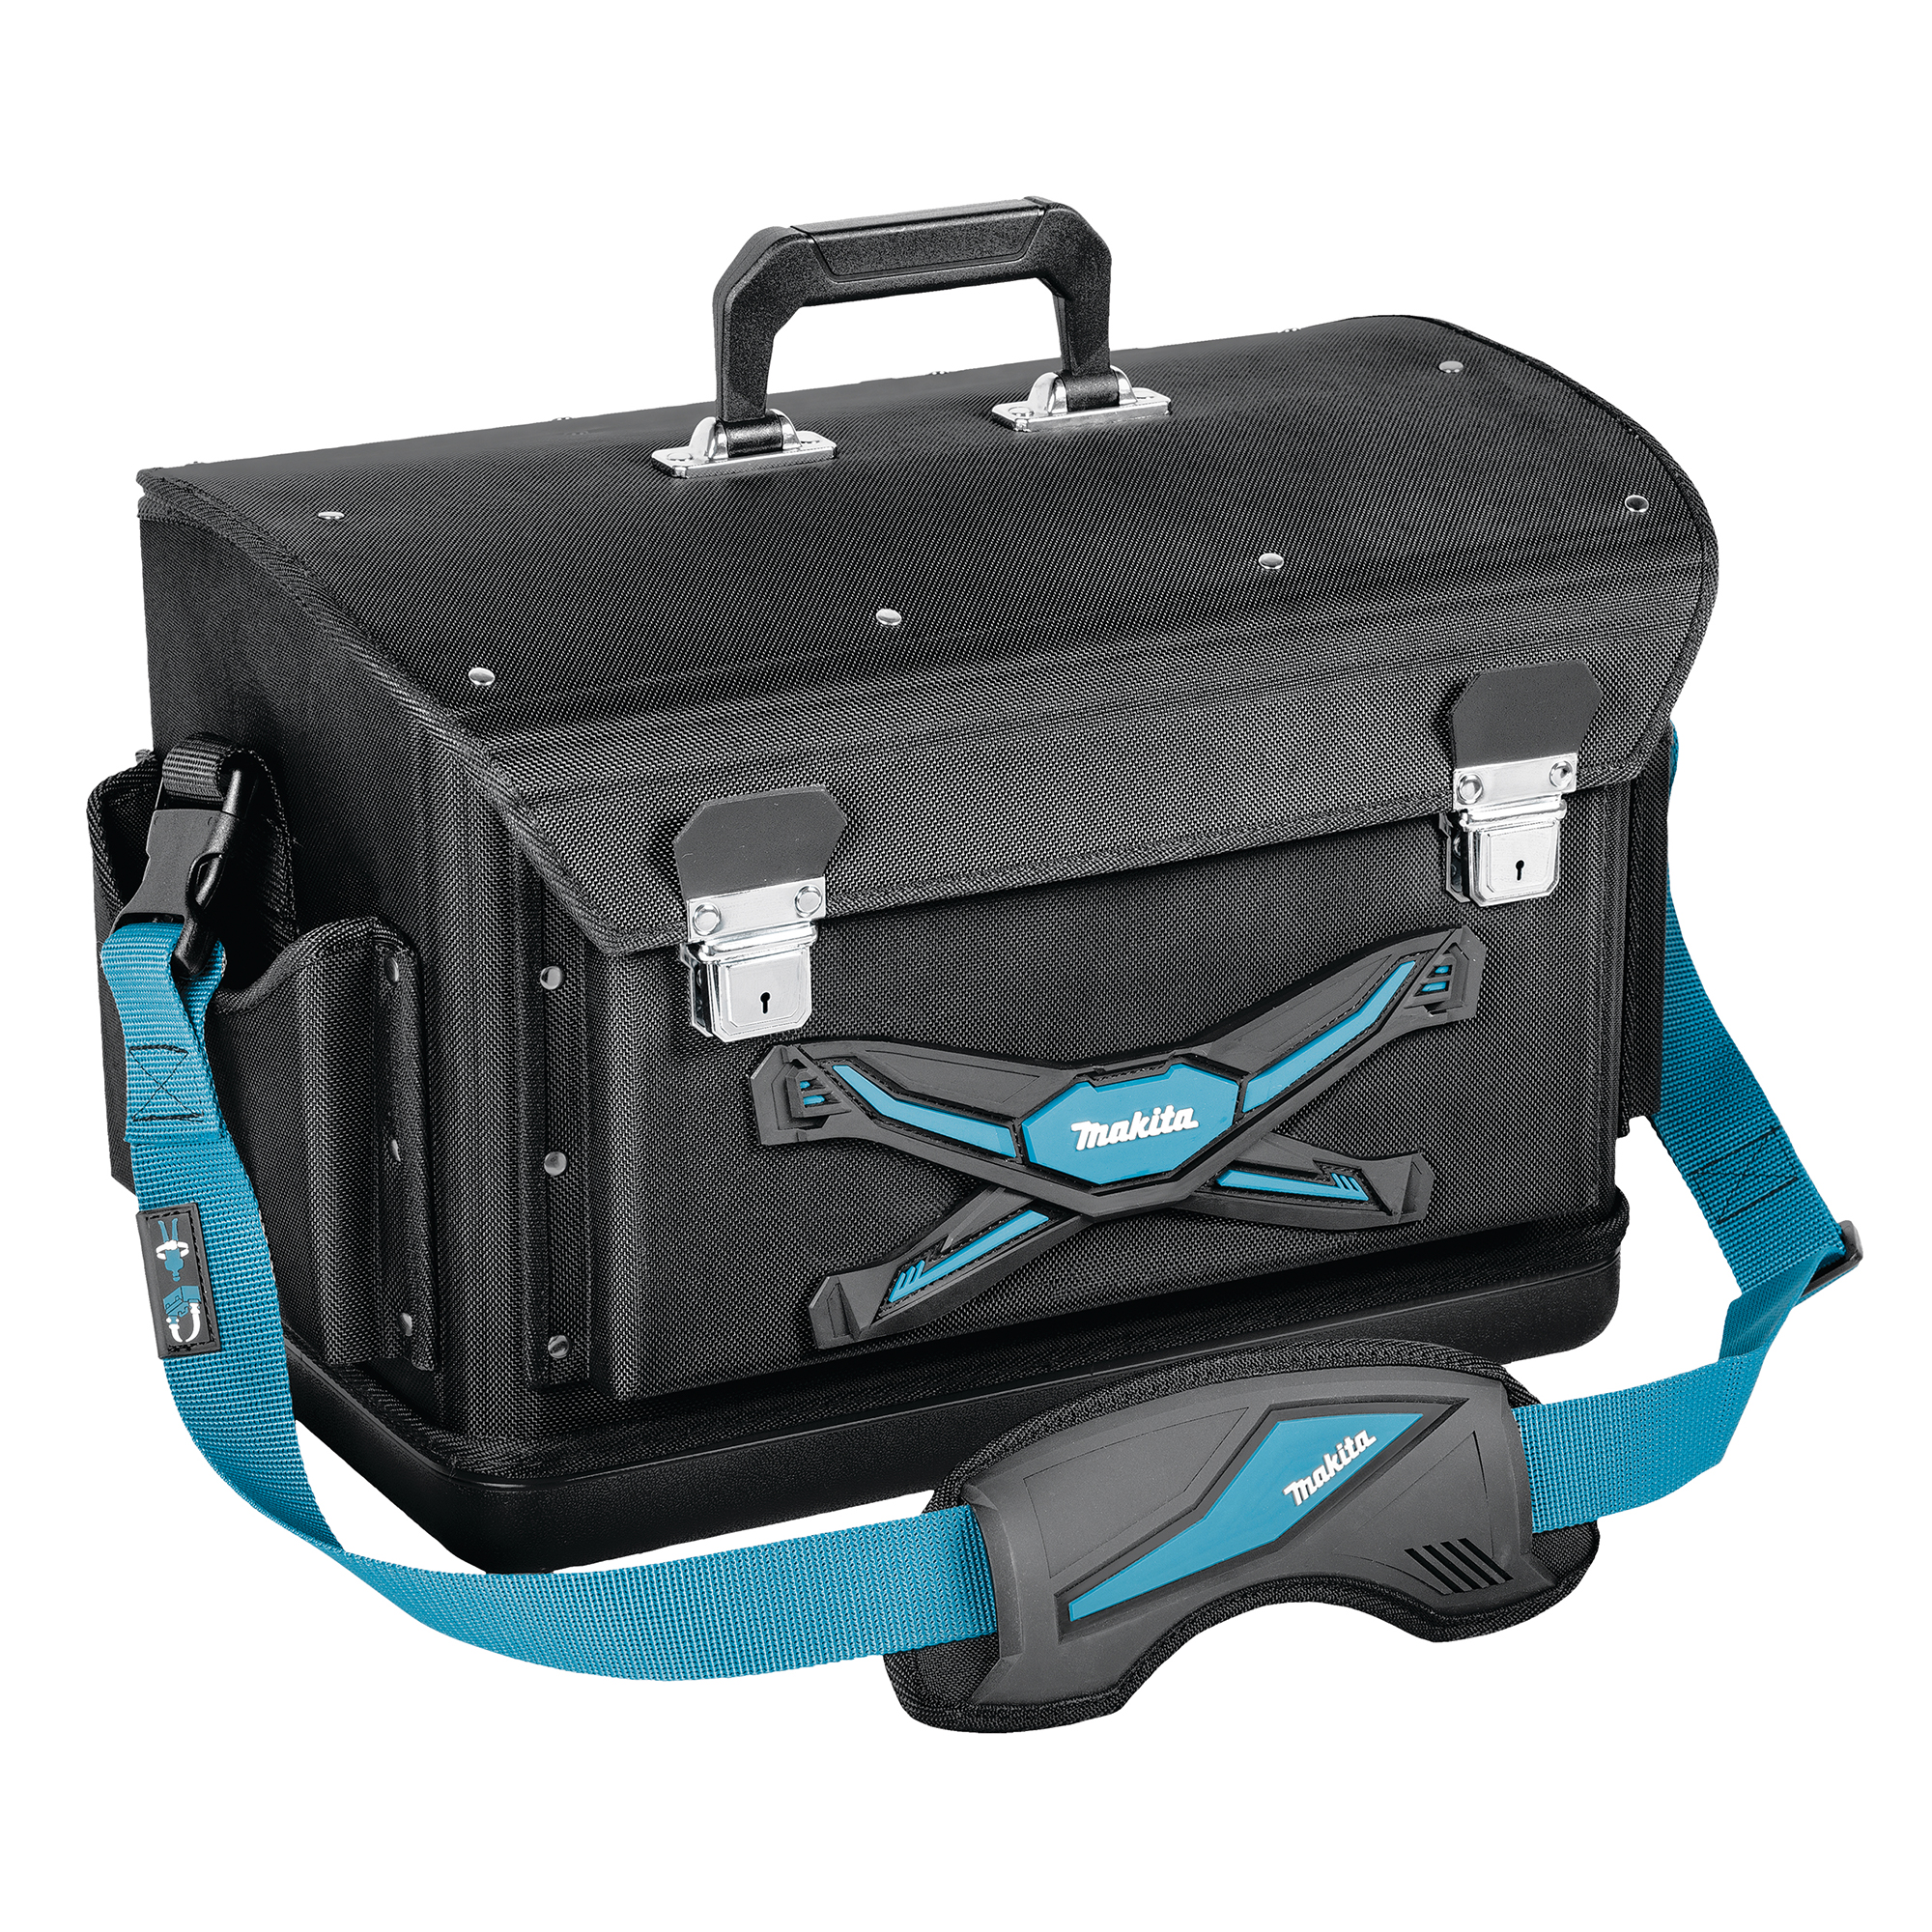 Makita TH3 Ultimate Adjustable Tool Case - E-05418